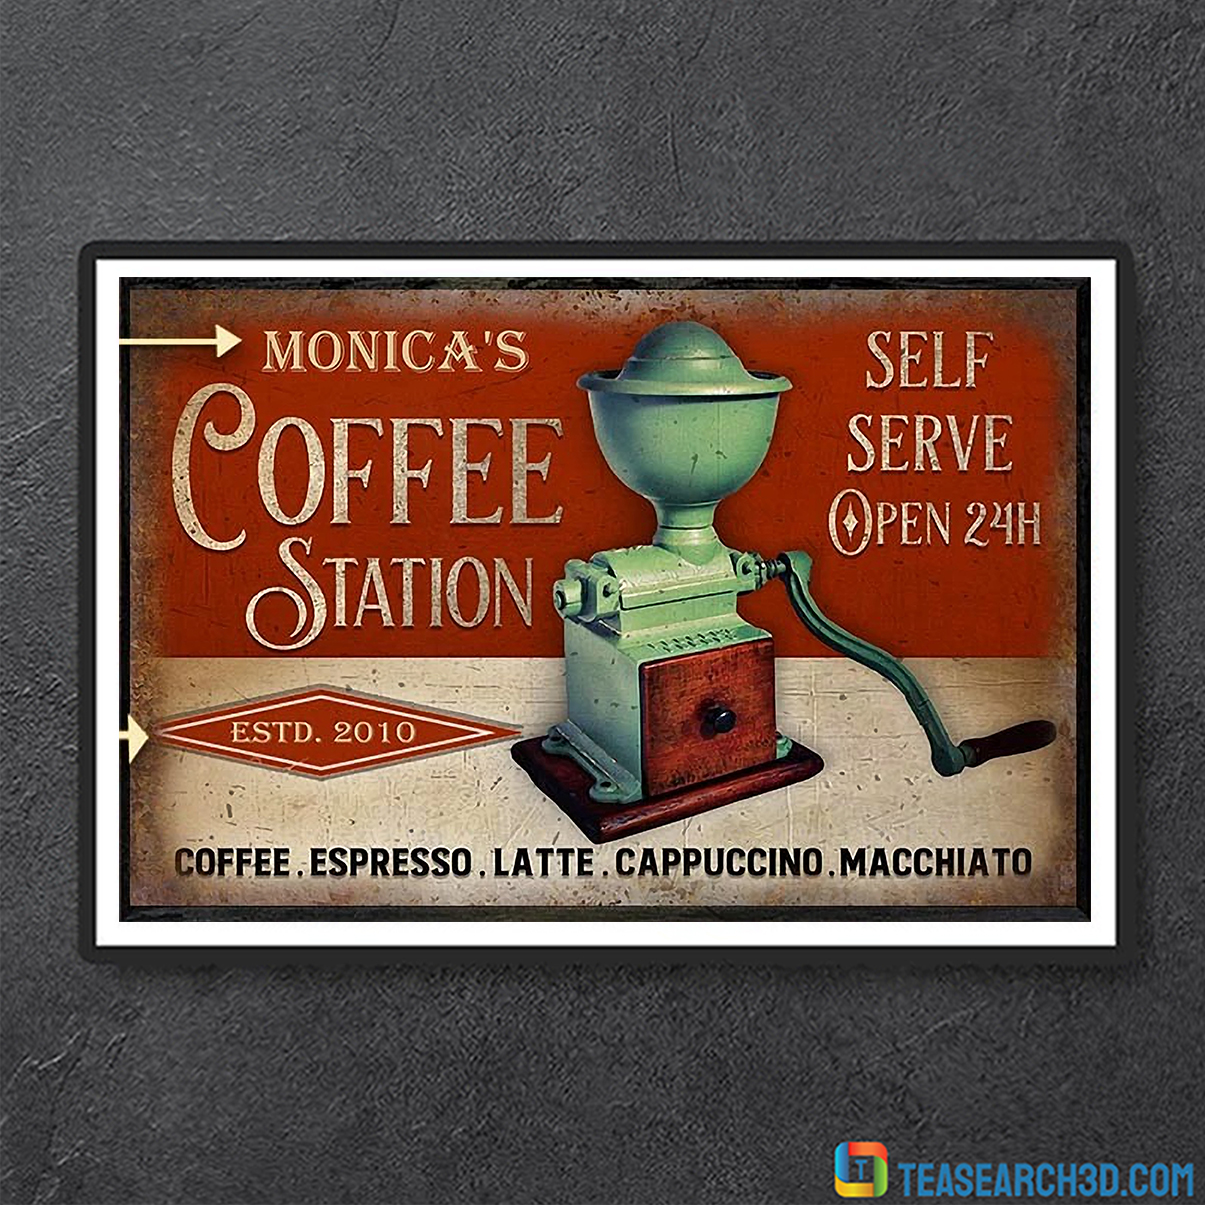 Personalized custom name coffee station self serve poster A3